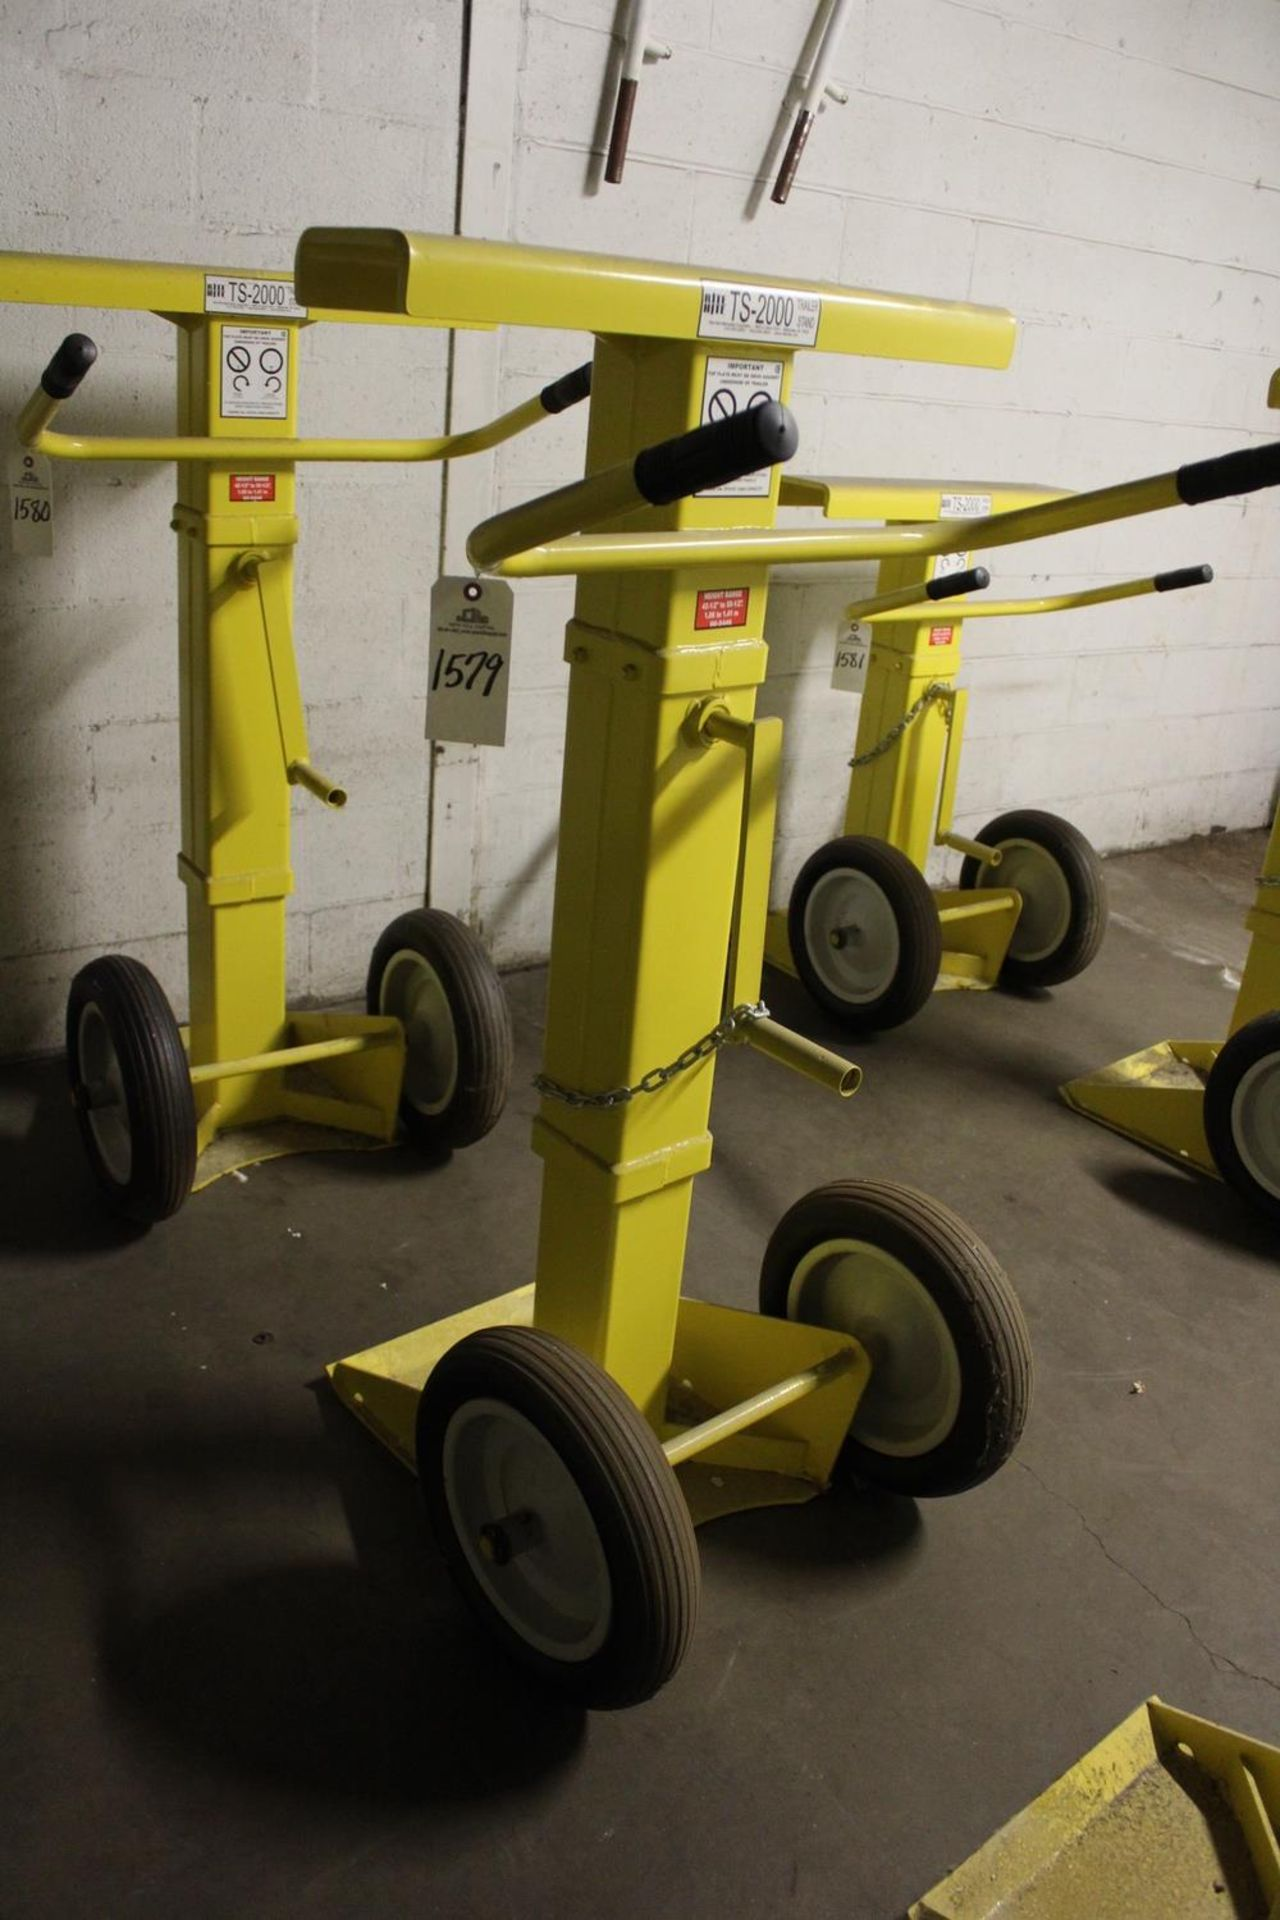 Lot 1579 - Rite Hite TS-2000 Trailer Stand - Subject to Bulk Bid Lot 15 | Rig Fee: Hand Carry or Contact Rigger